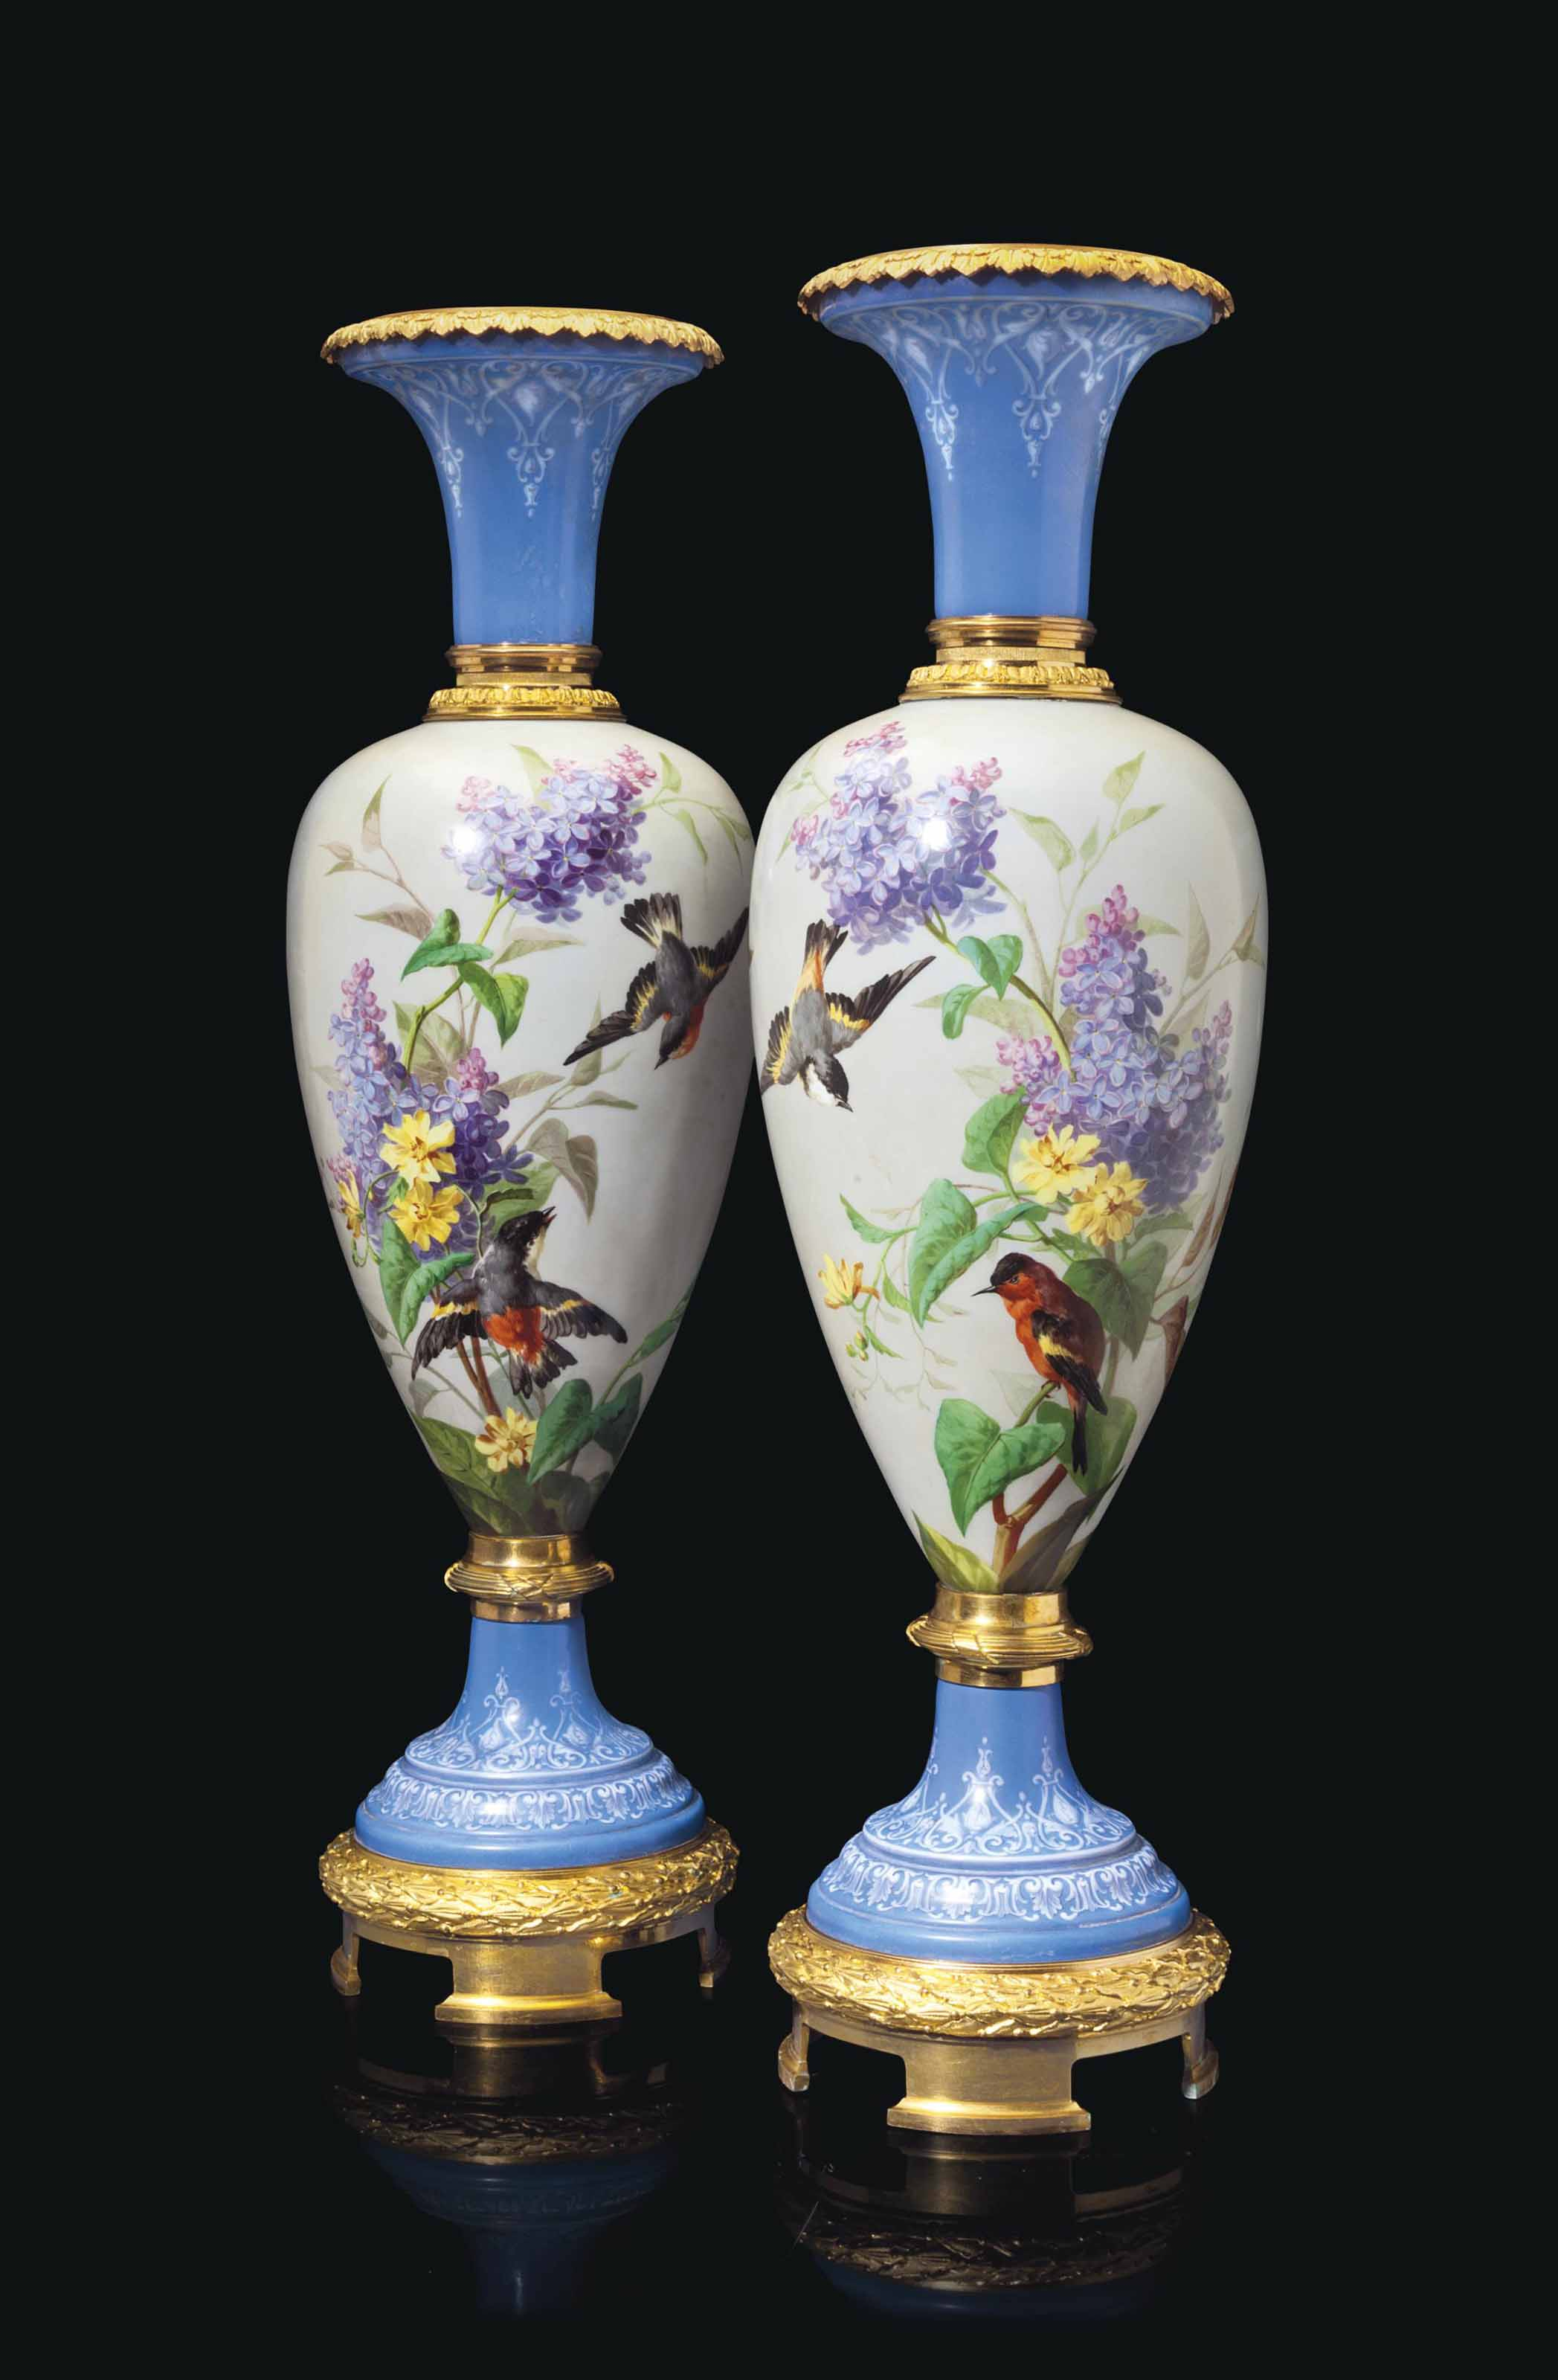 A LARGE PAIR OF ORMOLU-MOUNTED BACCARAT OPAQUE-BLUE GLASS VASES